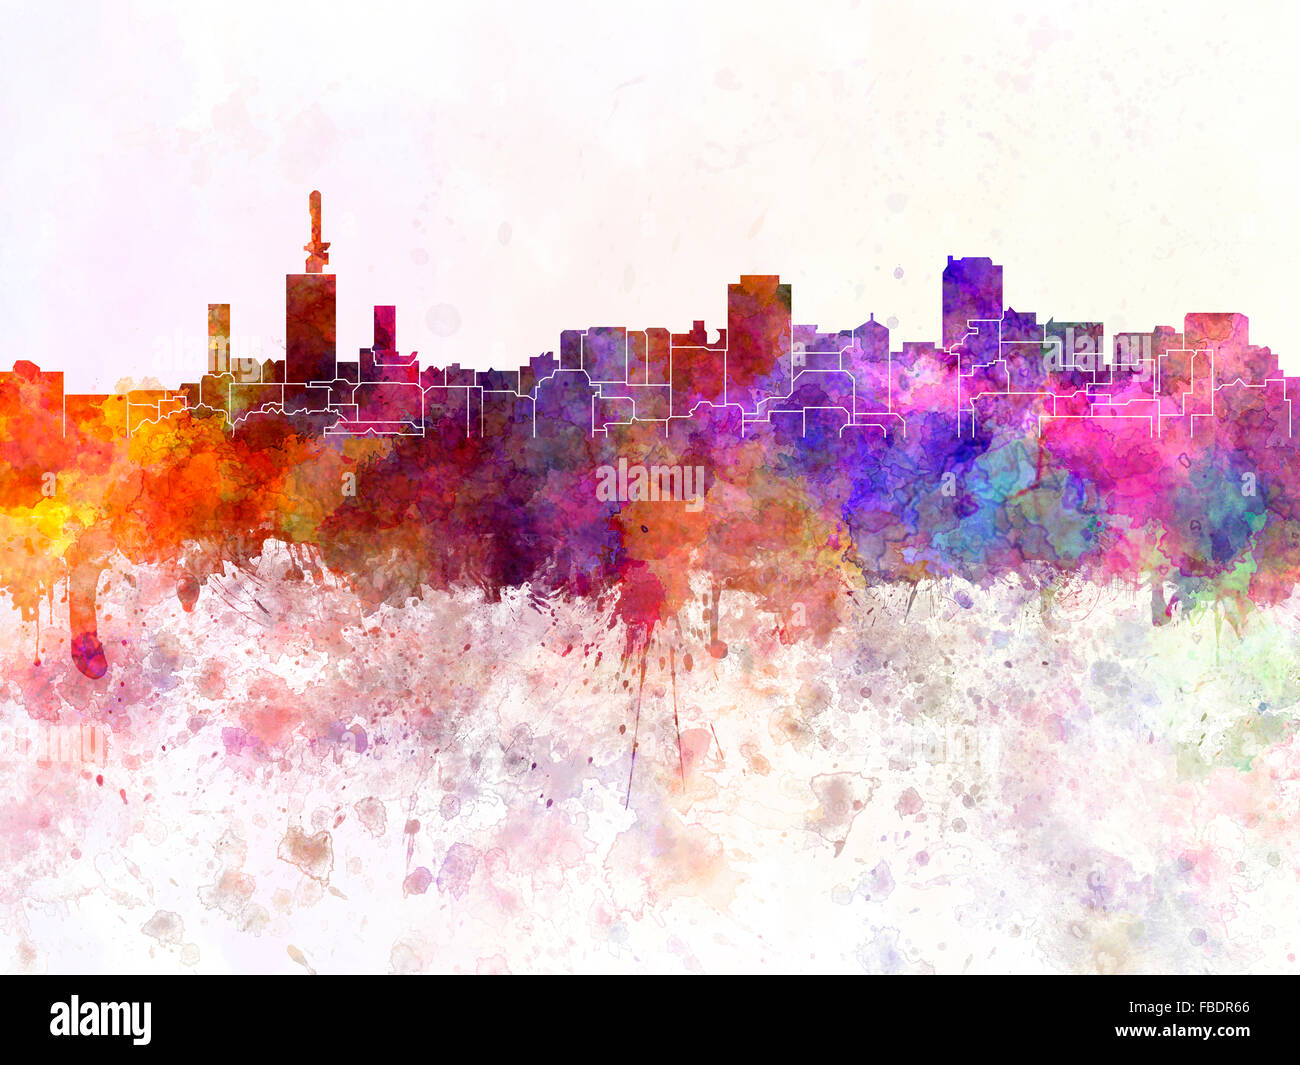 Lagos skyline in watercolor background - Stock Image